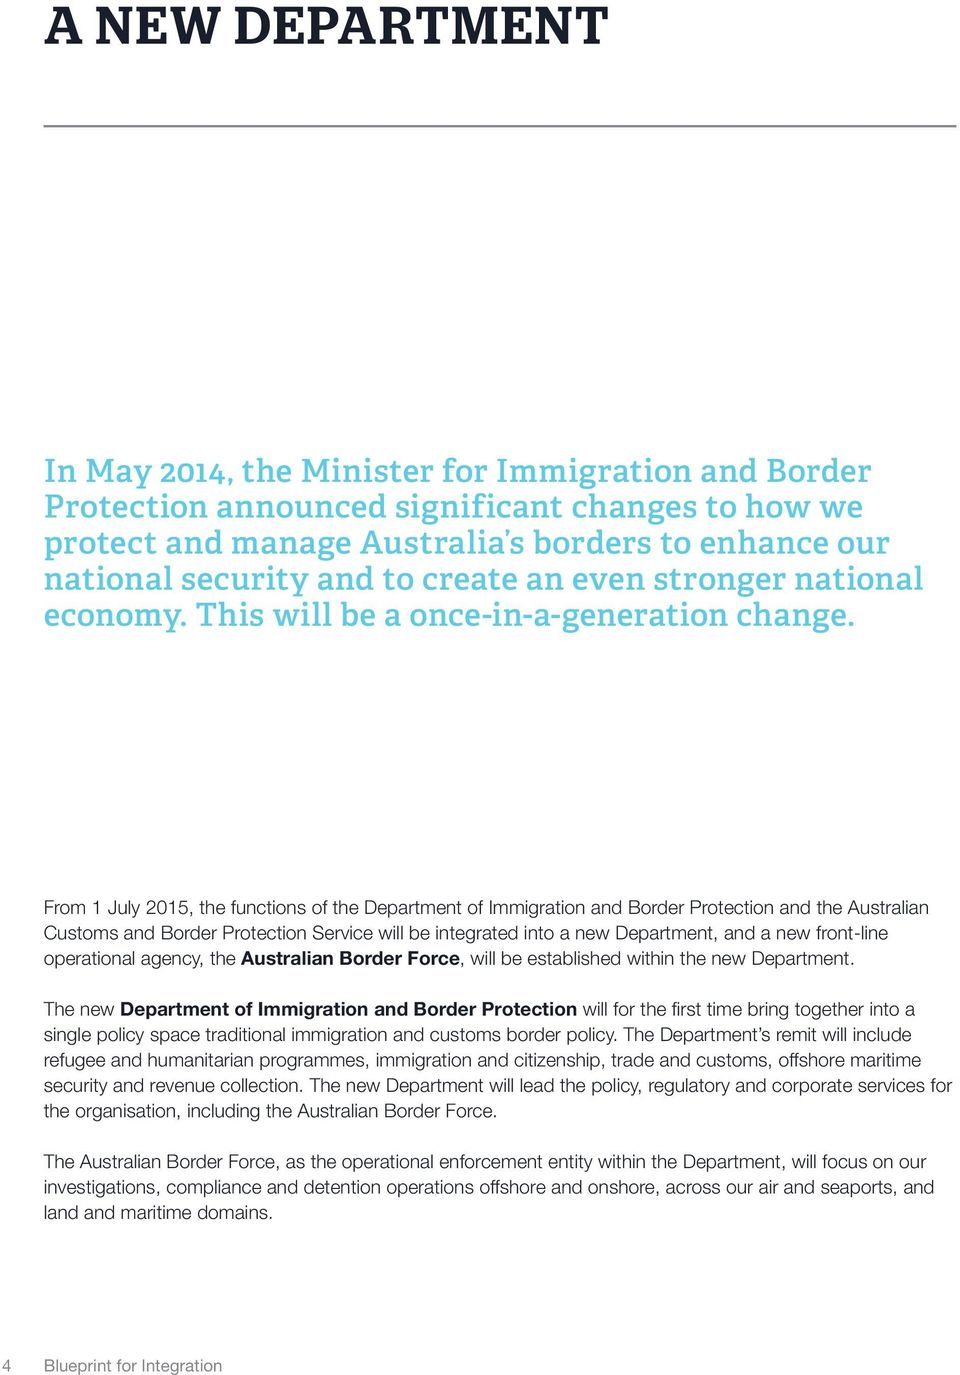 From 1 July 2015, the functions of the Department of Immigration and Border Protection and the Australian Customs and Border Protection Service will be integrated into a new Department, and a new